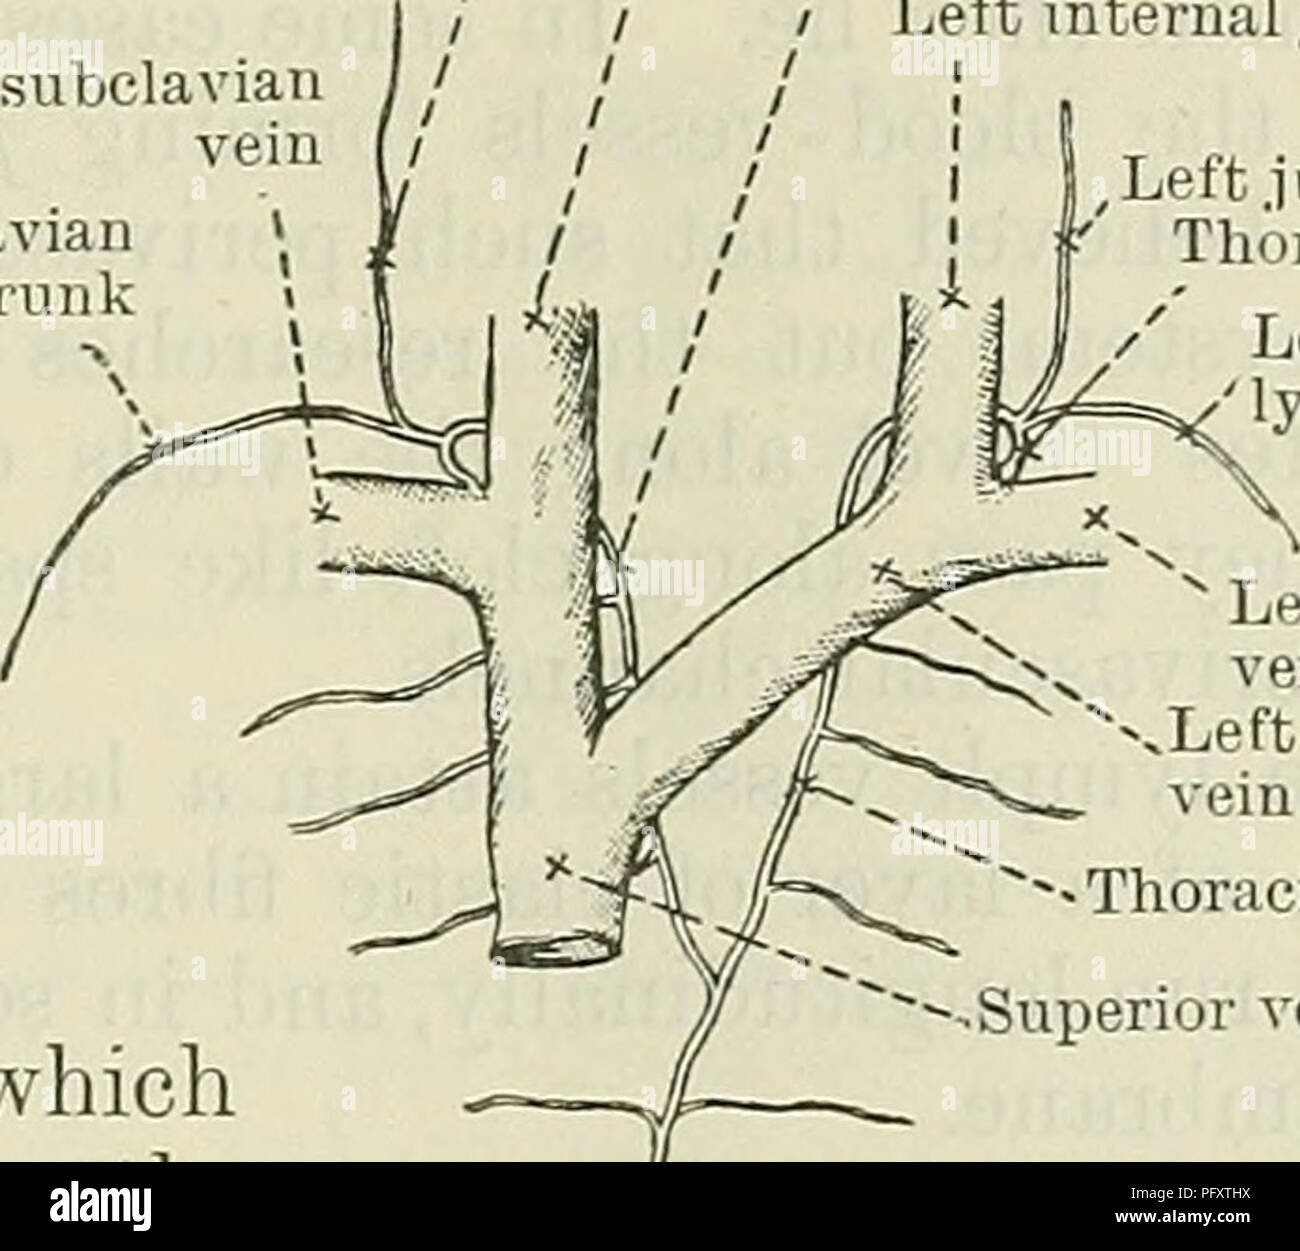 Mesenteric Vein Stock Photos Mesenteric Vein Stock Images Alamy